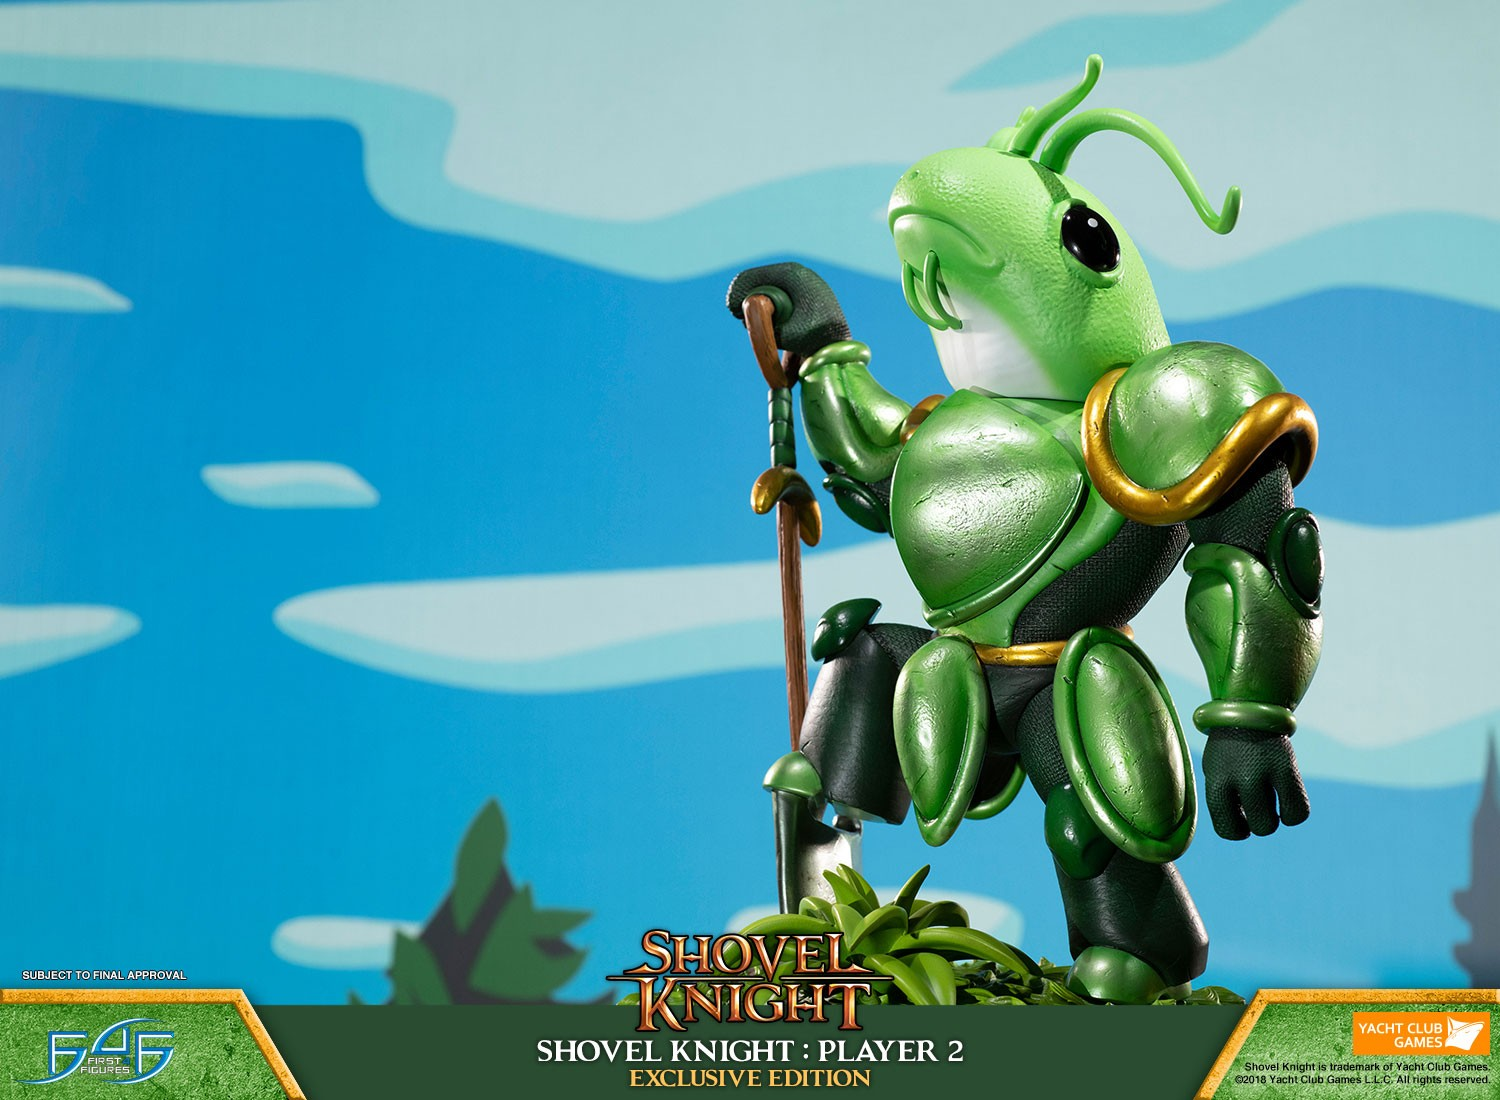 Shovel Knight Player 2 (Exclusive Edition)